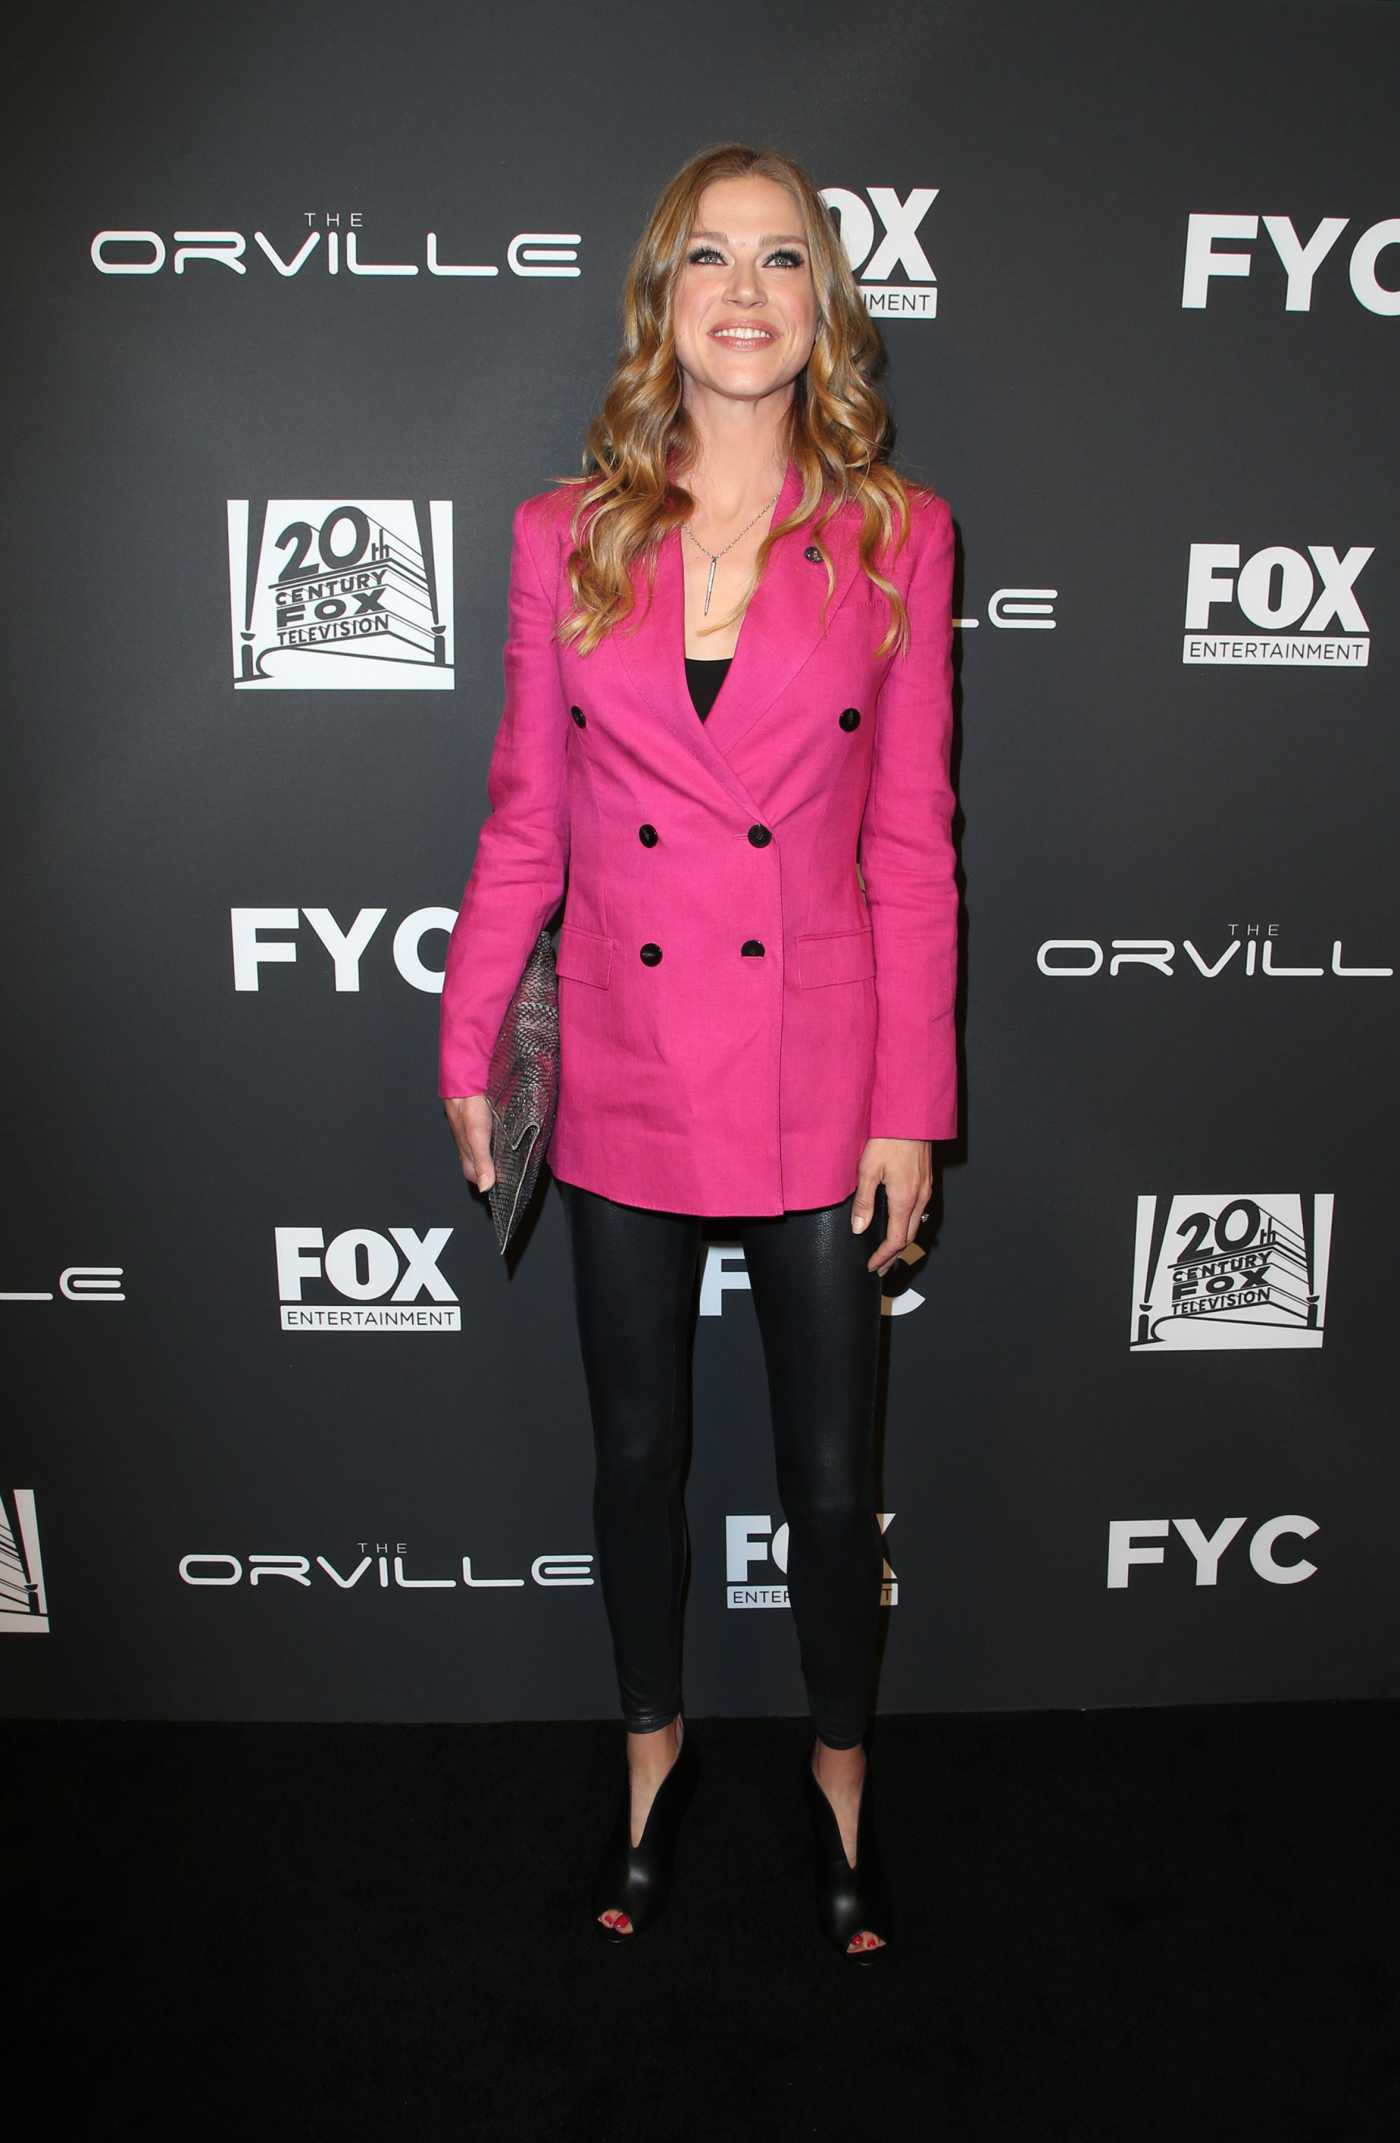 Adrianne Palicki Attends The Orville TV Show Photocall in LA 04/25/2019